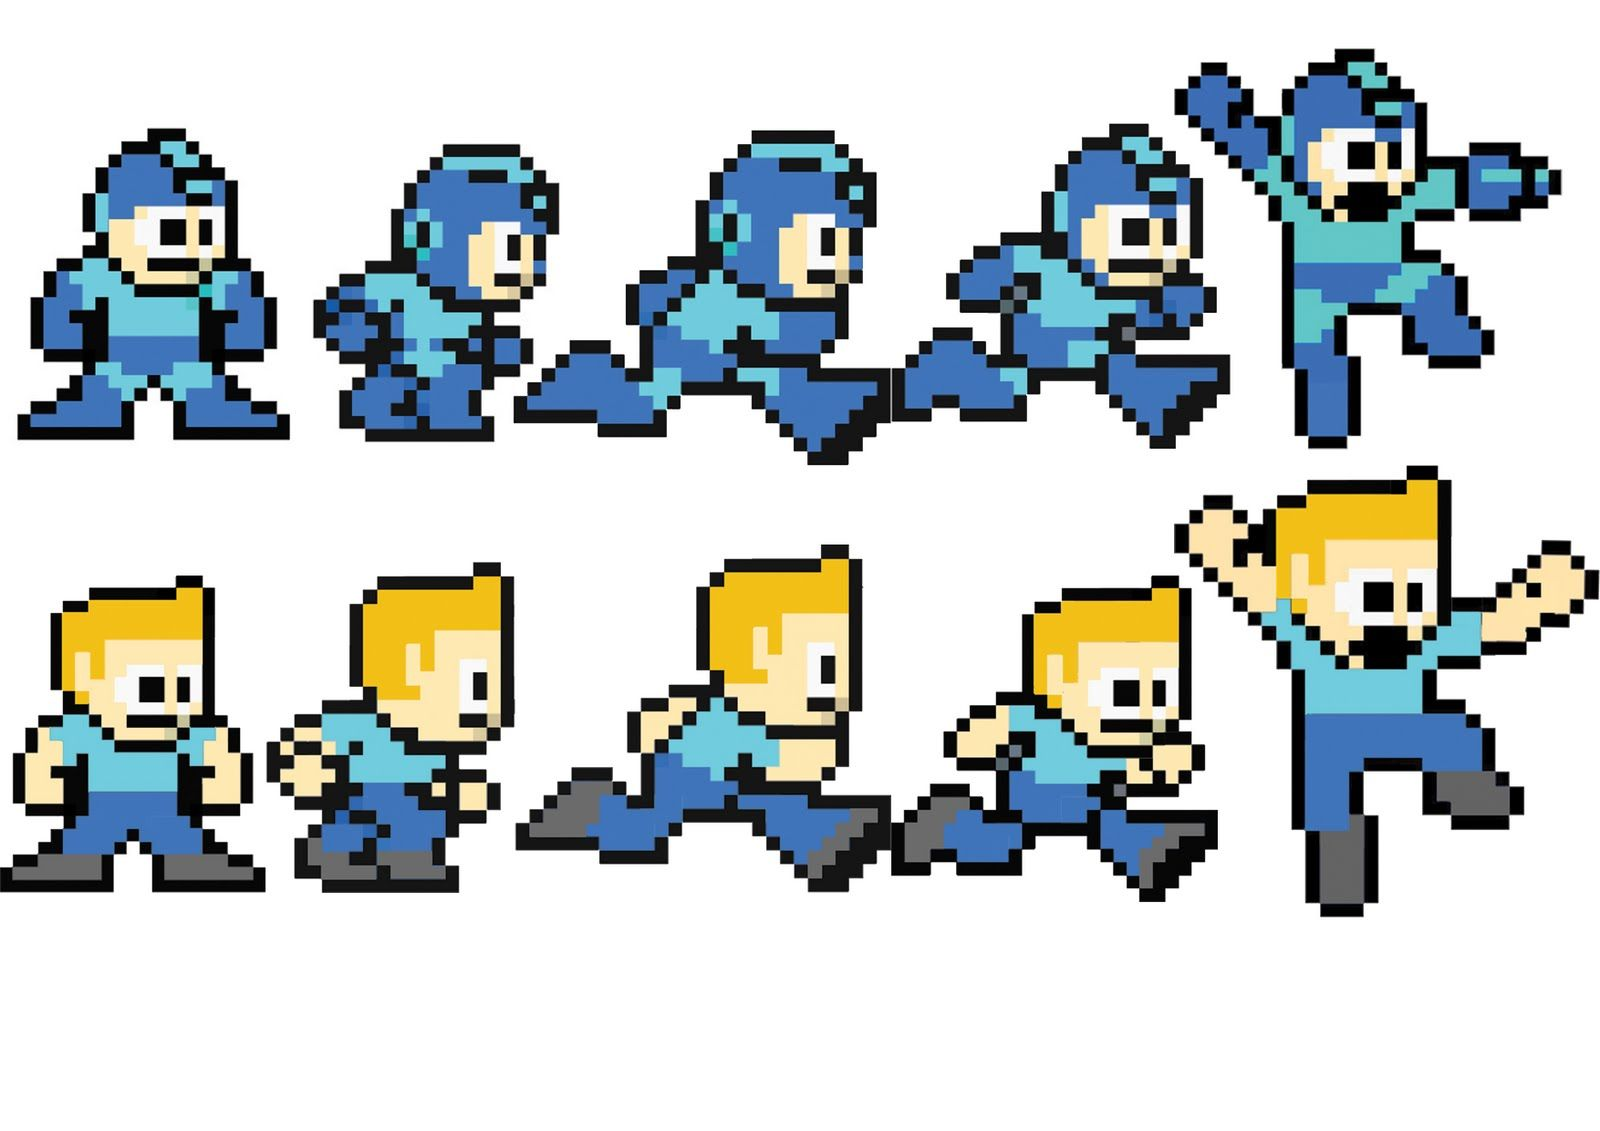 8 bit characters template - Google Search   8 Bit   Character